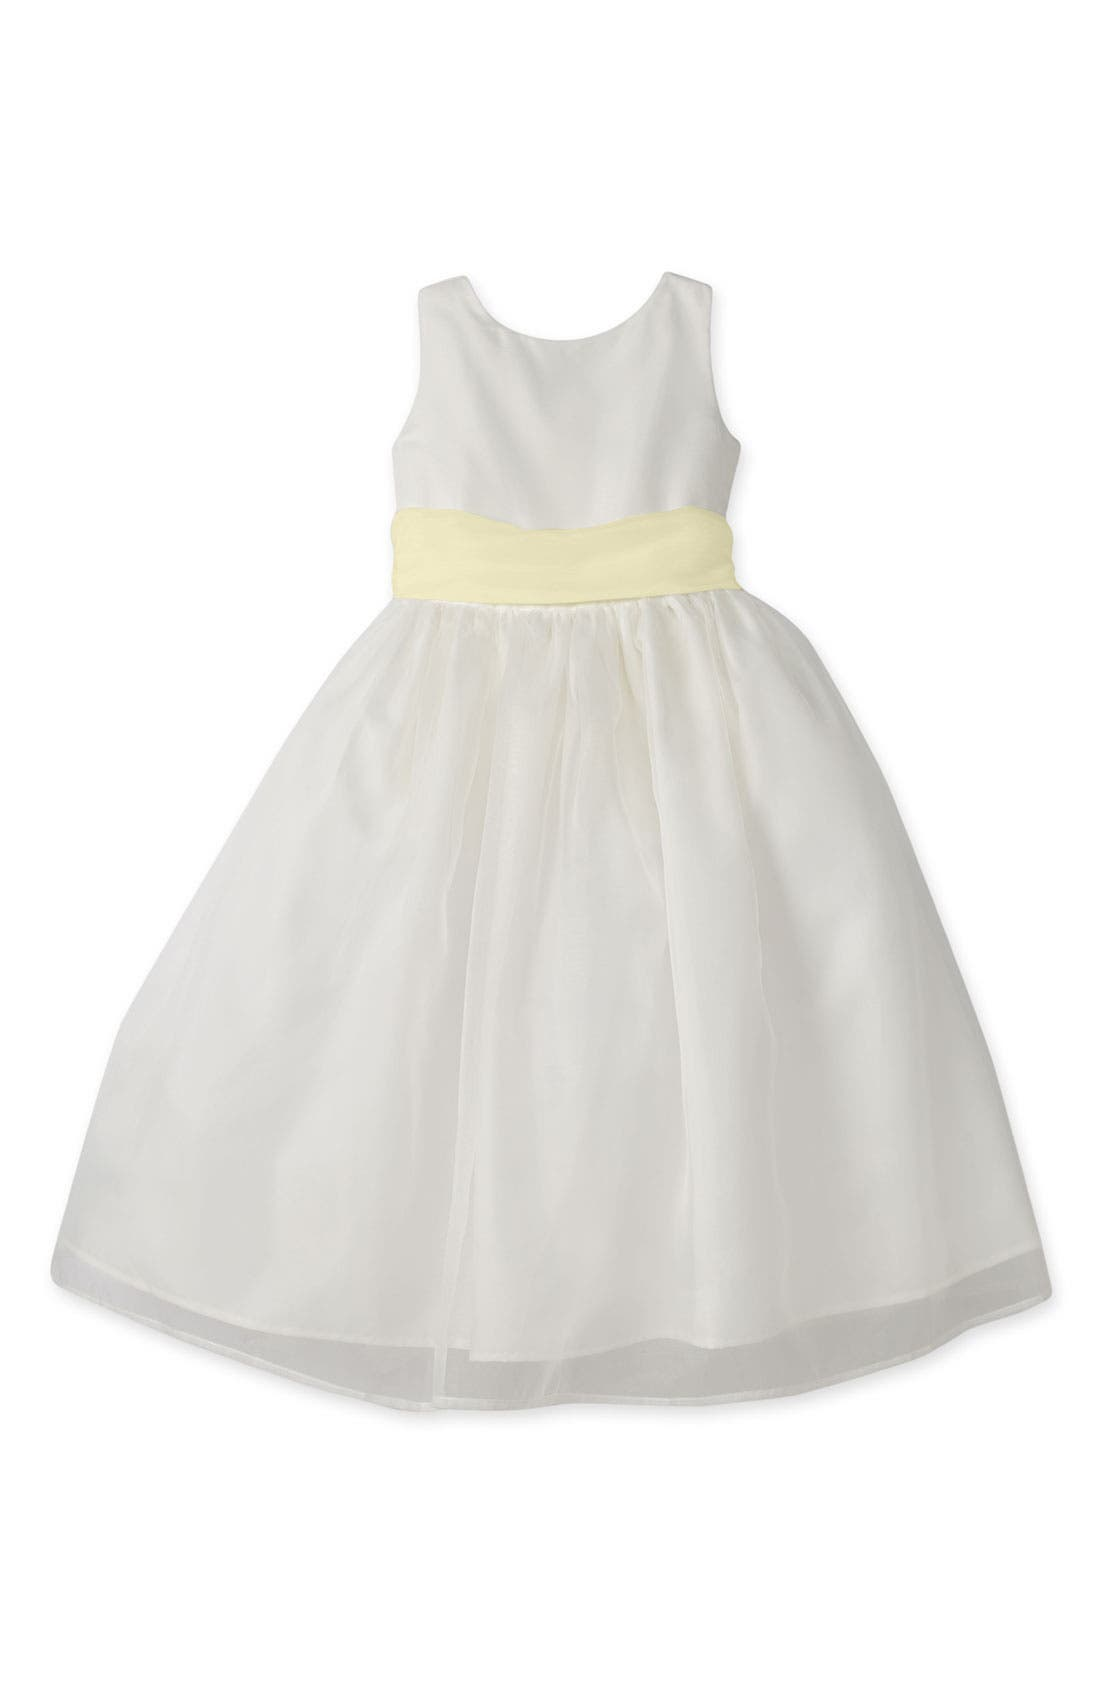 Us Angels Sleeveless Organza Dress (Toddler Girls, Little Girls & Big Girls)